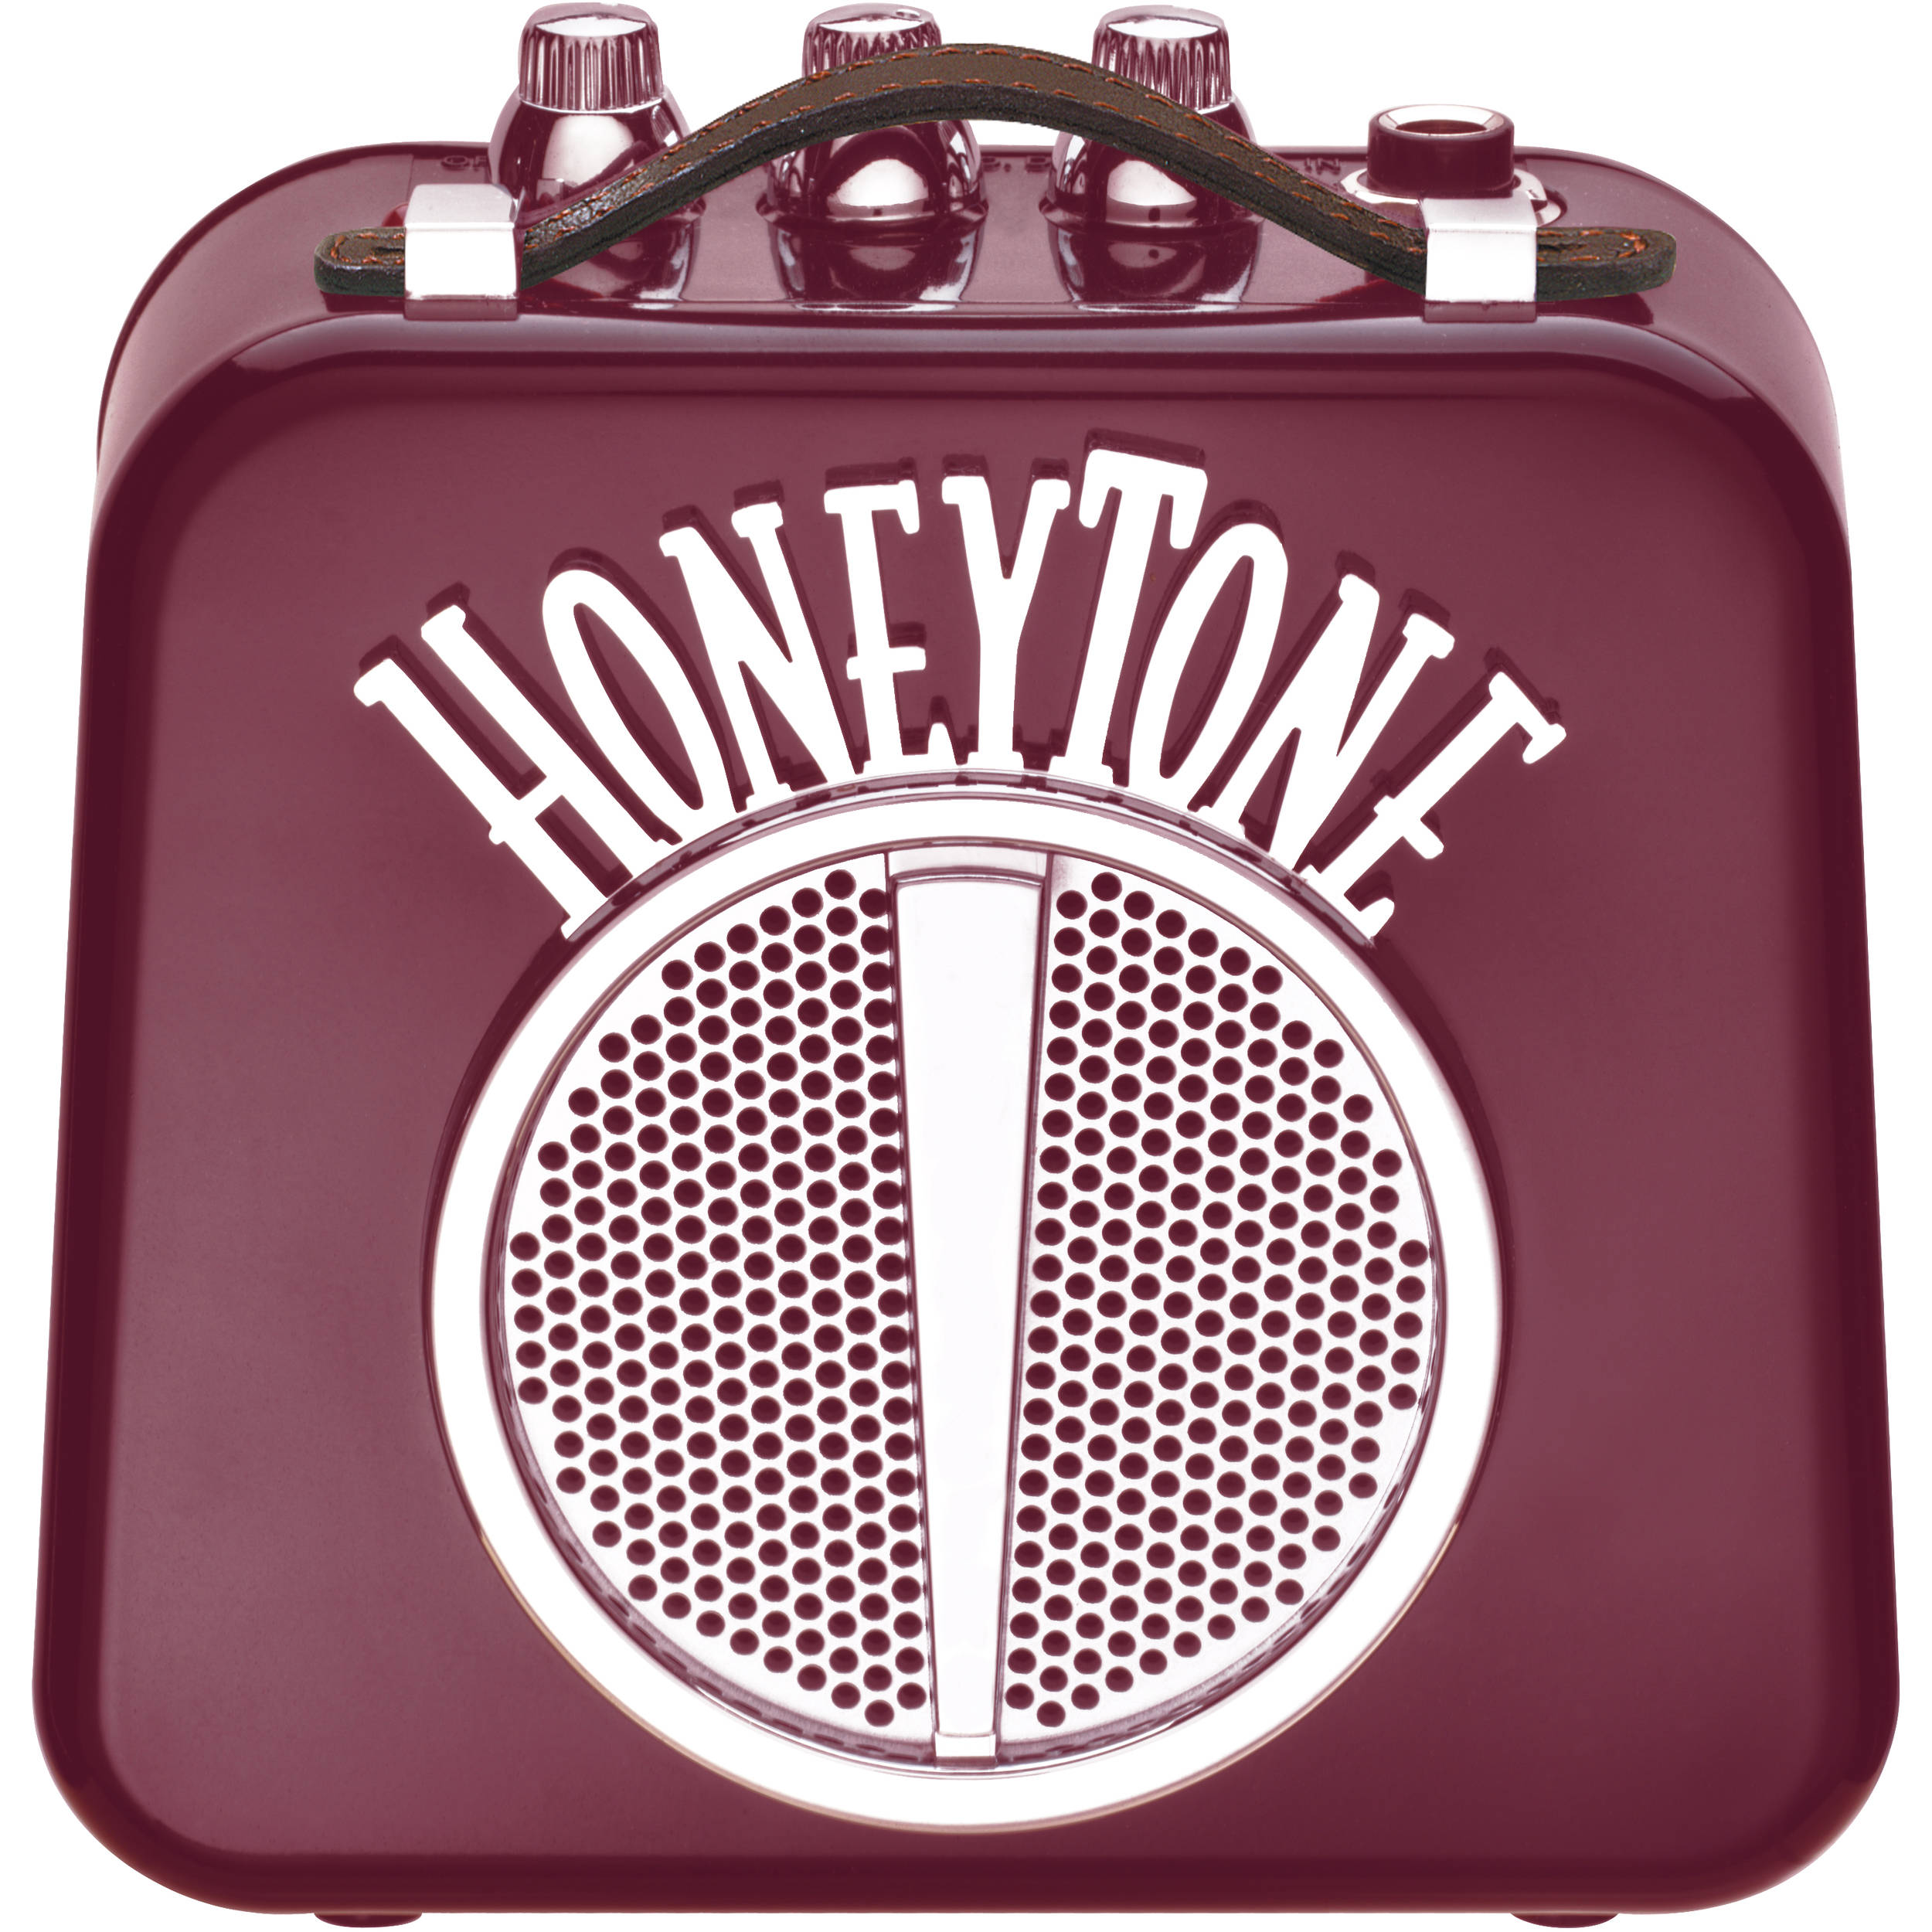 HONEY TONE N10 MINI AMP BURGUNDY